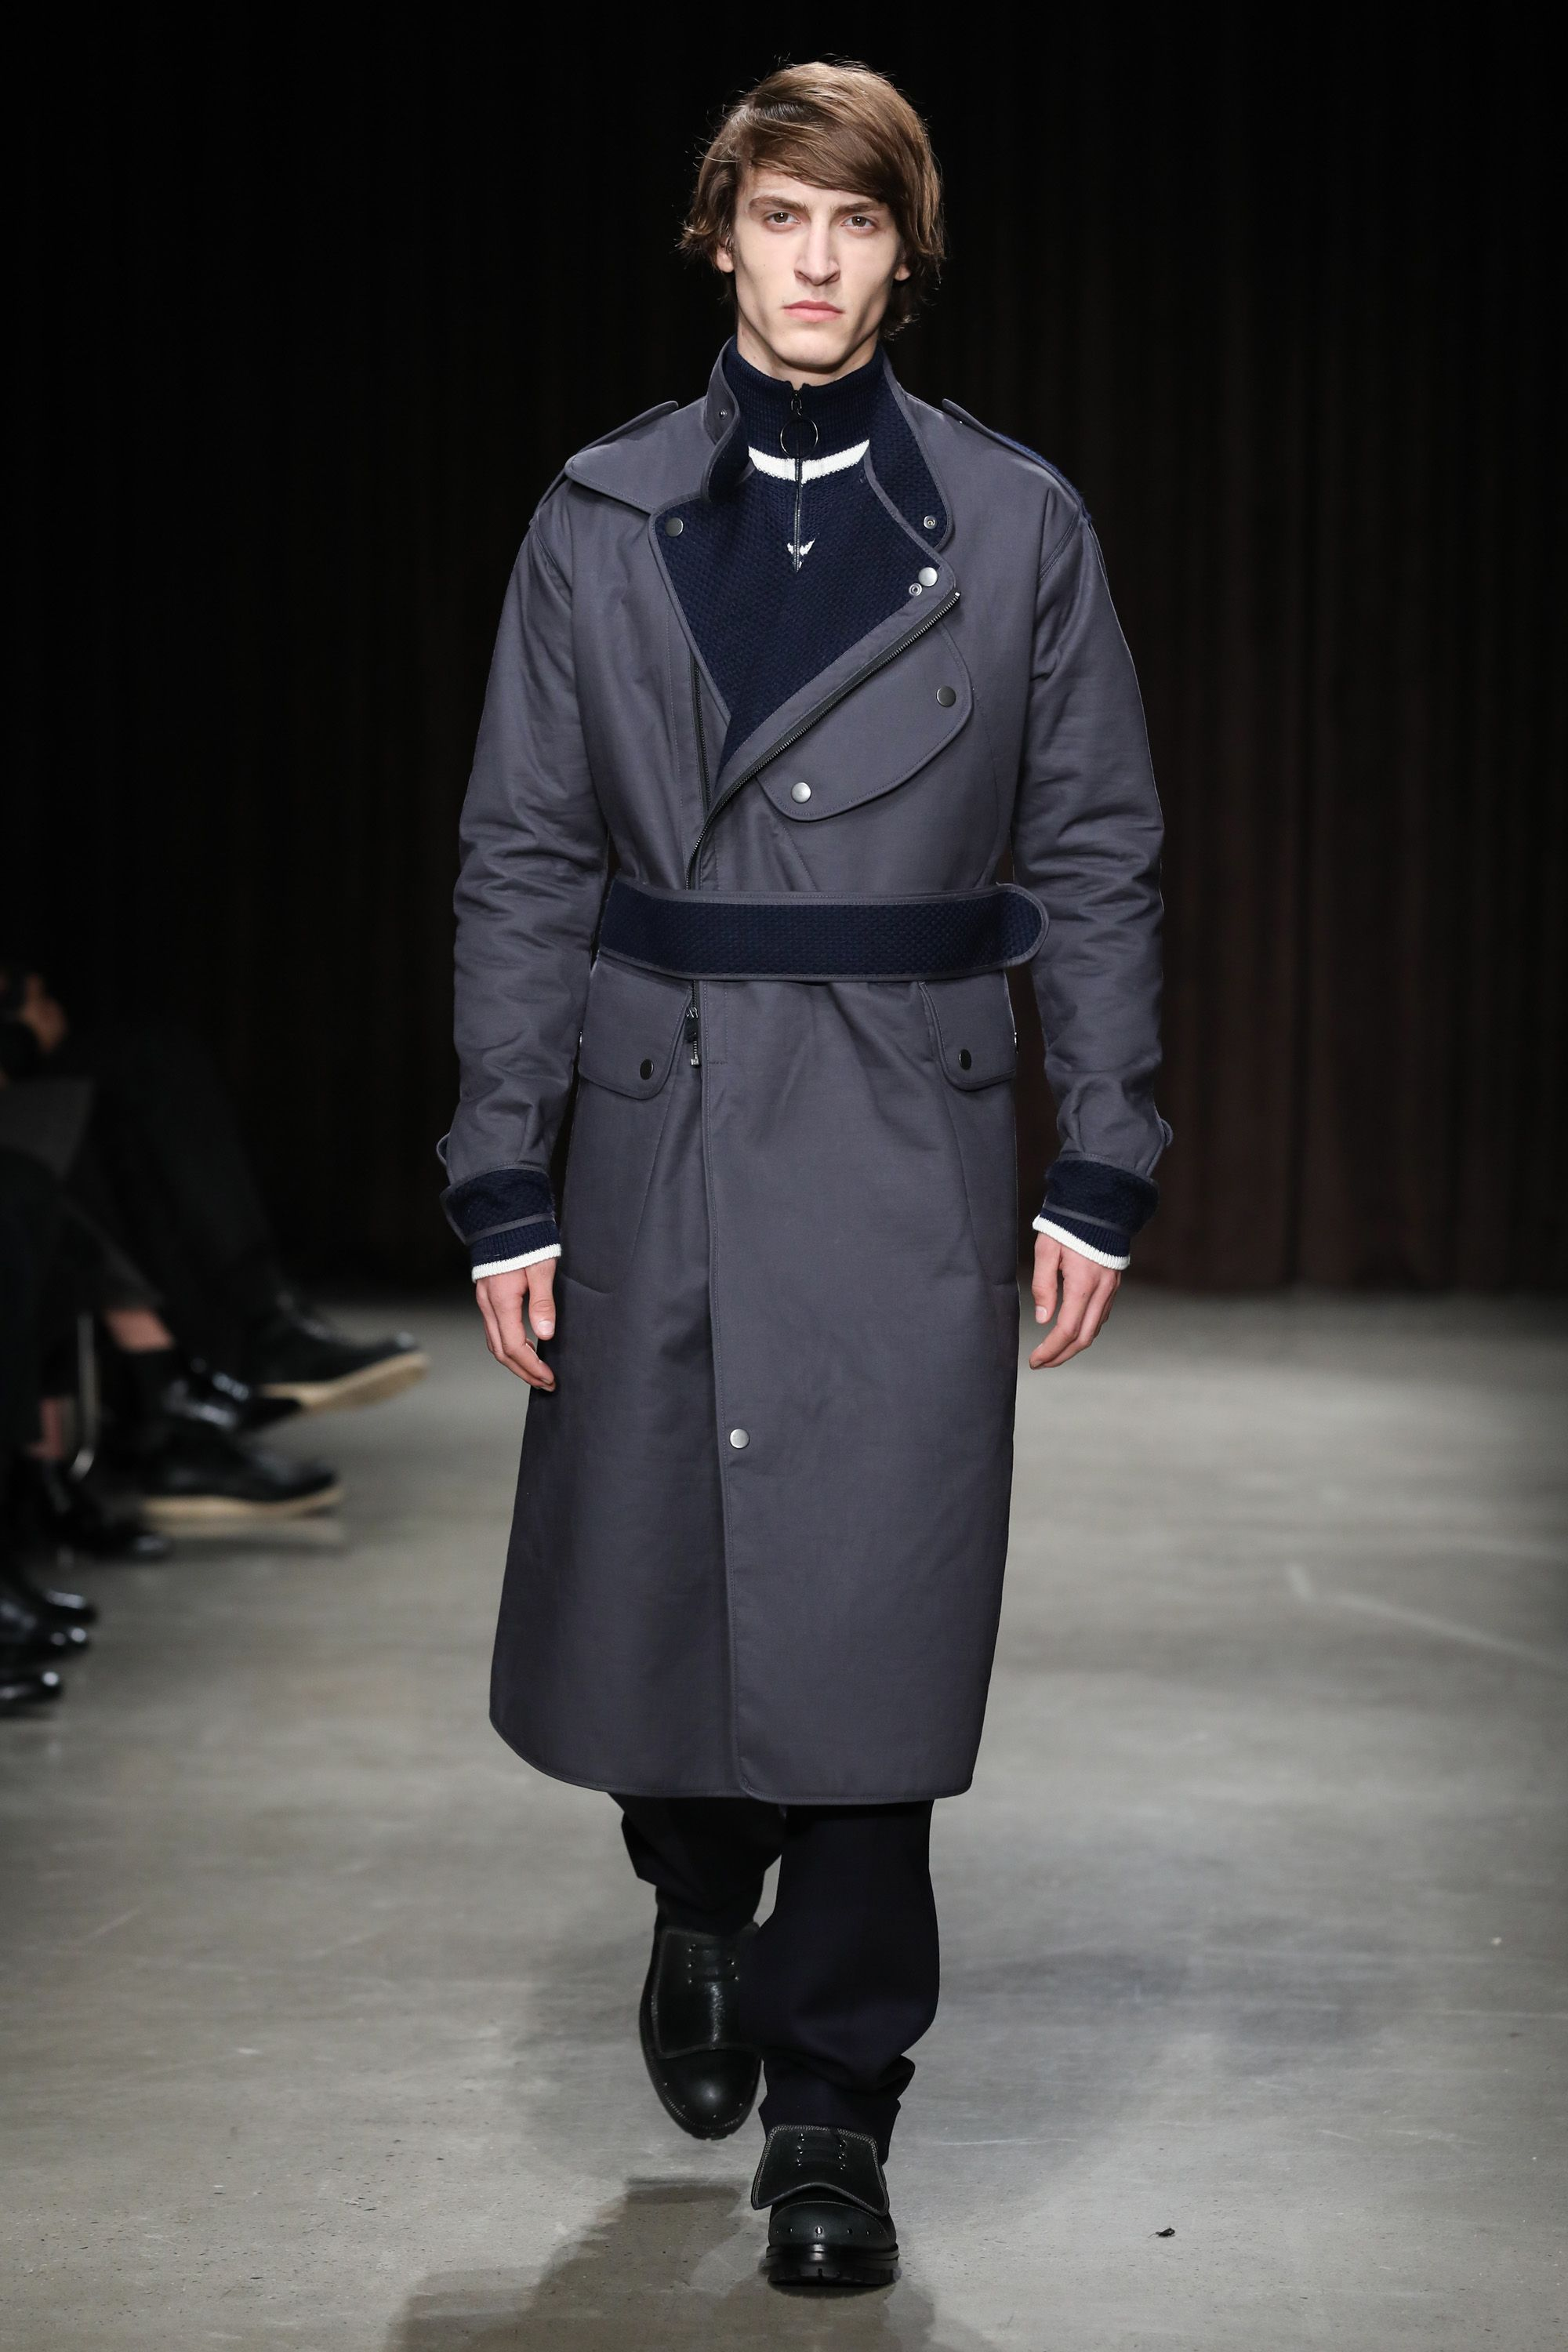 Boss Autumn/Winter 2017 Menswear (With images) Menswear